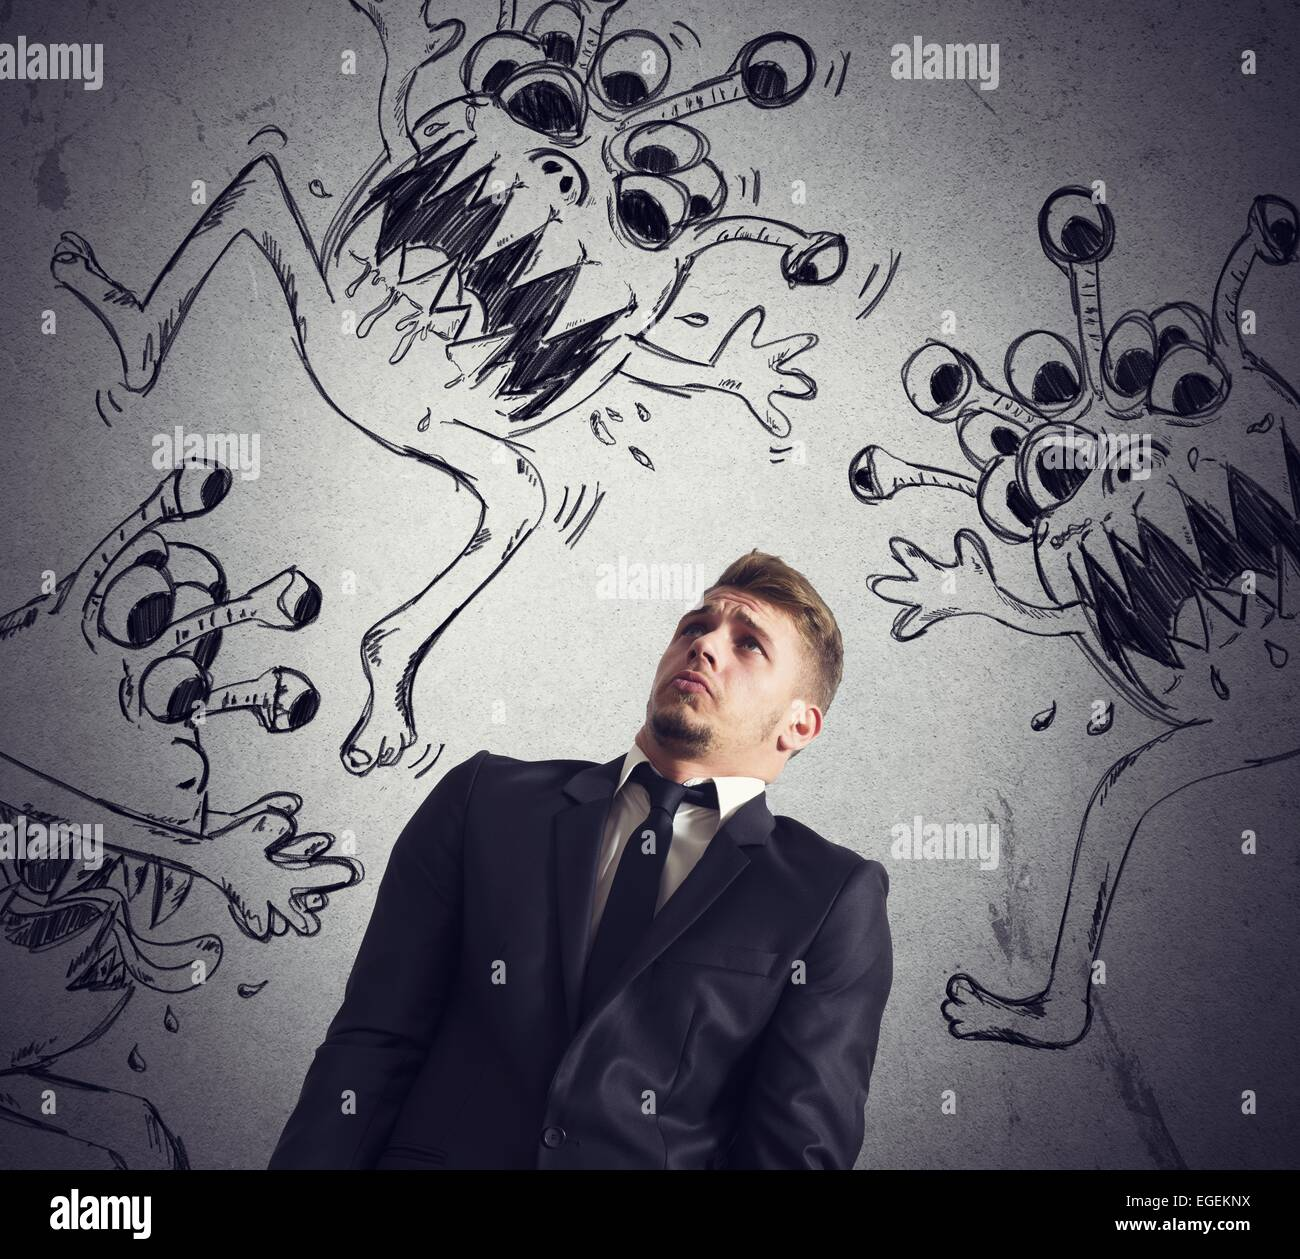 Contagion of virus - Stock Image